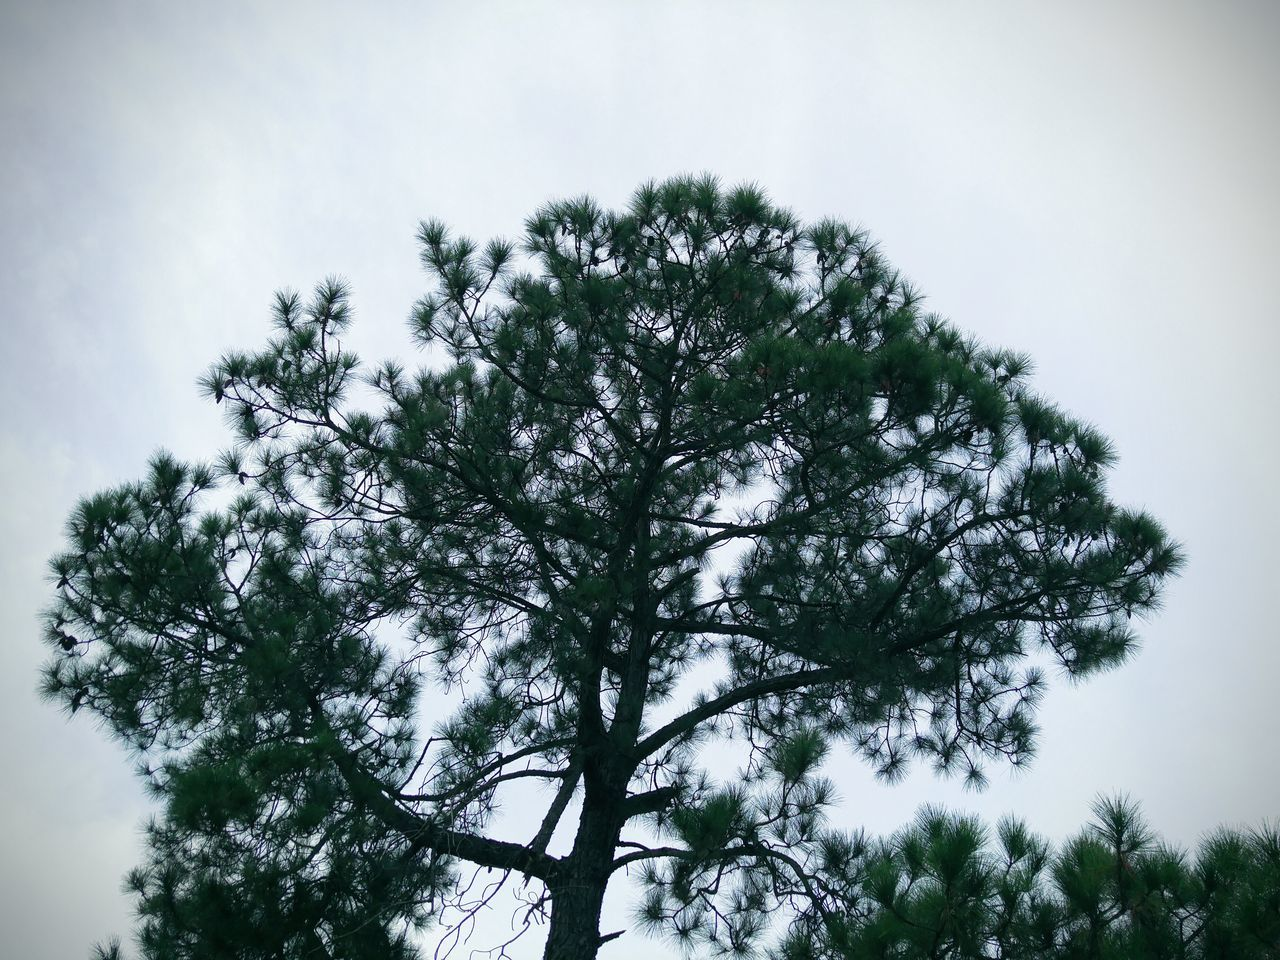 tree, nature, low angle view, growth, beauty in nature, branch, sky, no people, forest, outdoors, day, height